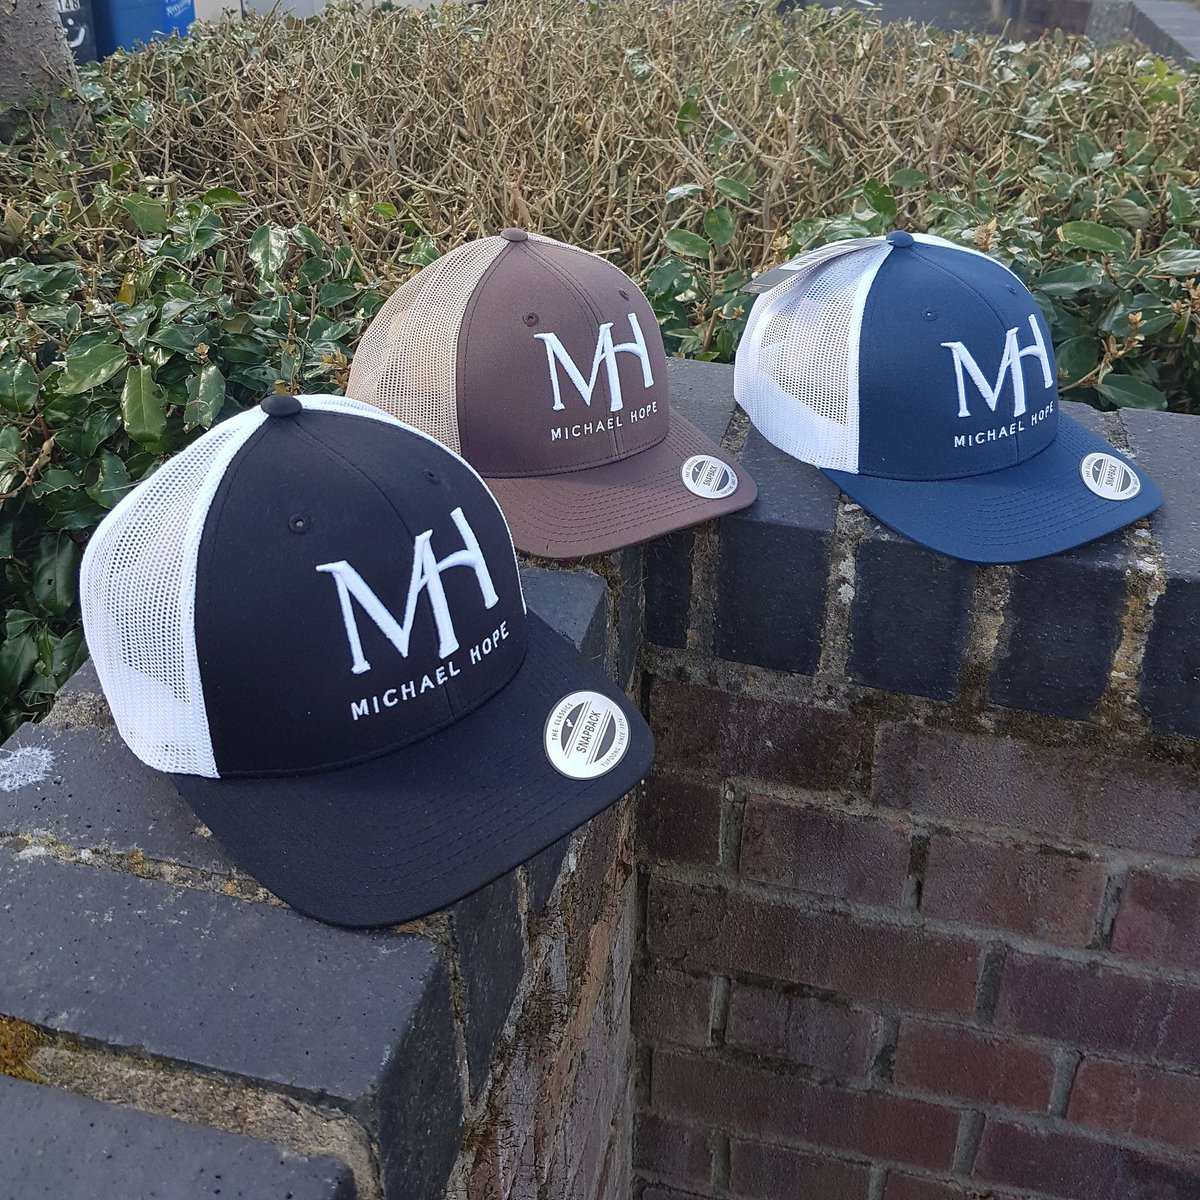 Summer vibes are in. Check out our trucker hats  #style #fashion #fresh #brand #follow #street #streetwear #gymwear #selection #uk #headwear<br>http://pic.twitter.com/LoDBD3Du0S